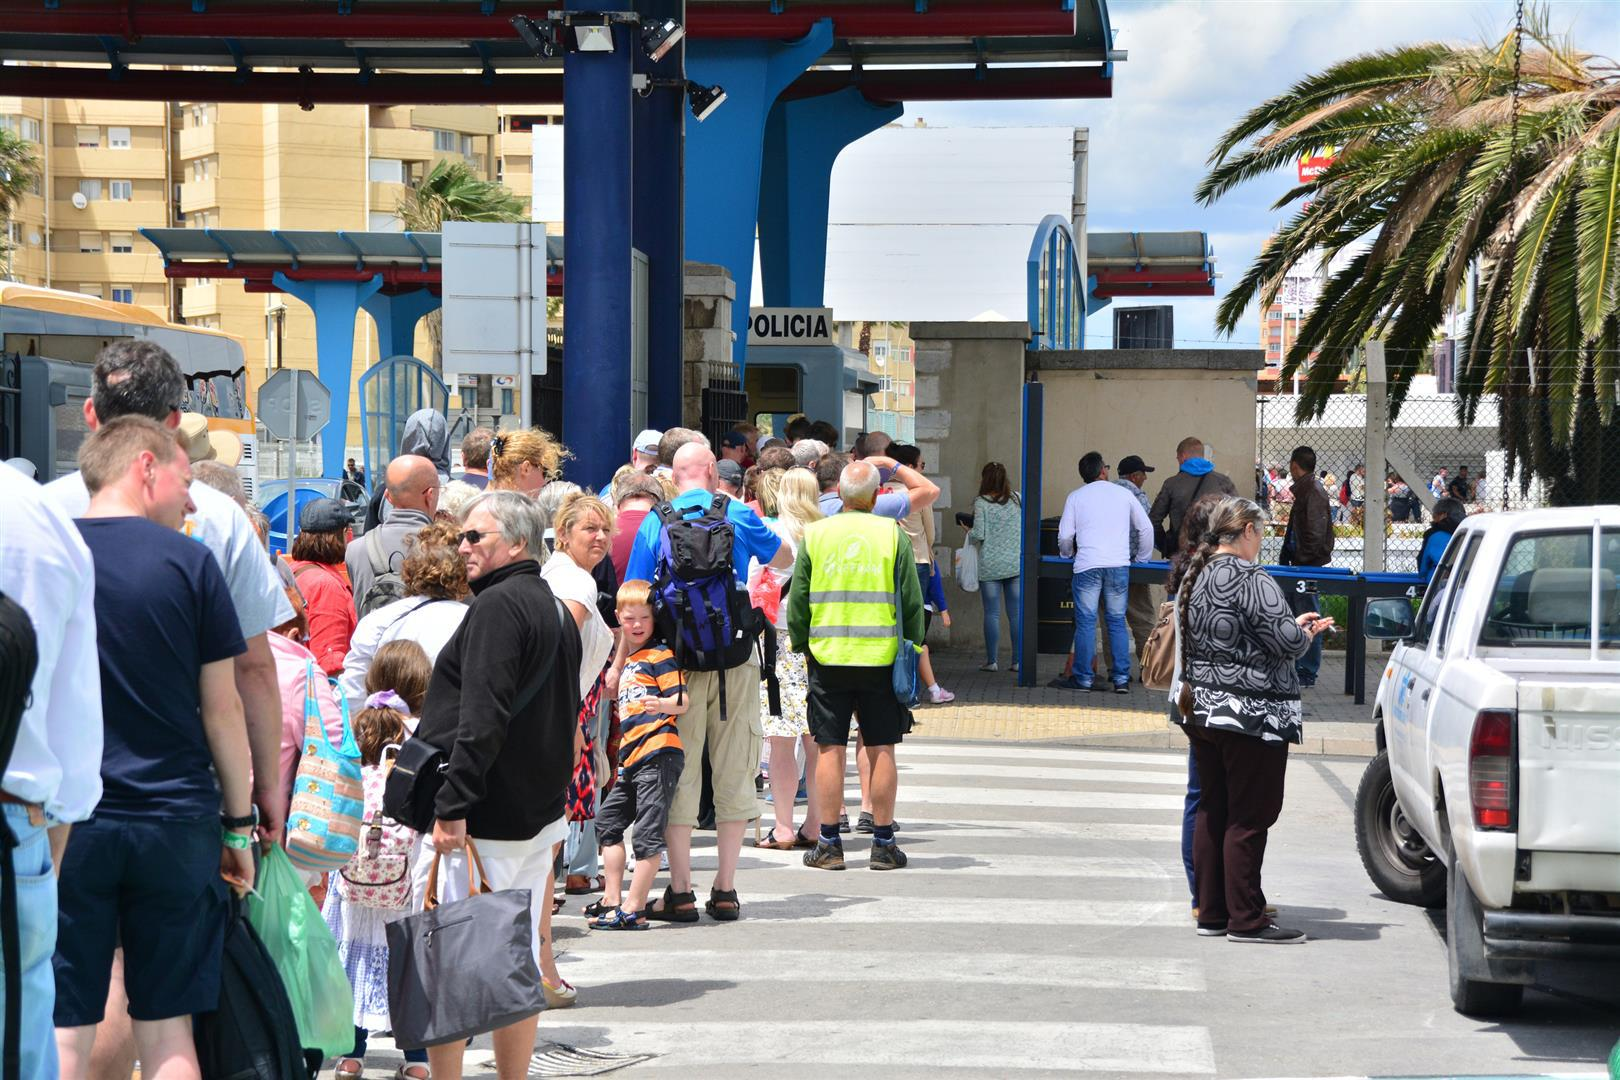 In less than five minutes a free flowing pedestrain zone saw queues increased by effecting a total stop of all persons crossing for nearly 15 minutes. This led to queues forming on the Gibraltar side extending into the airport forecourt within minutes.